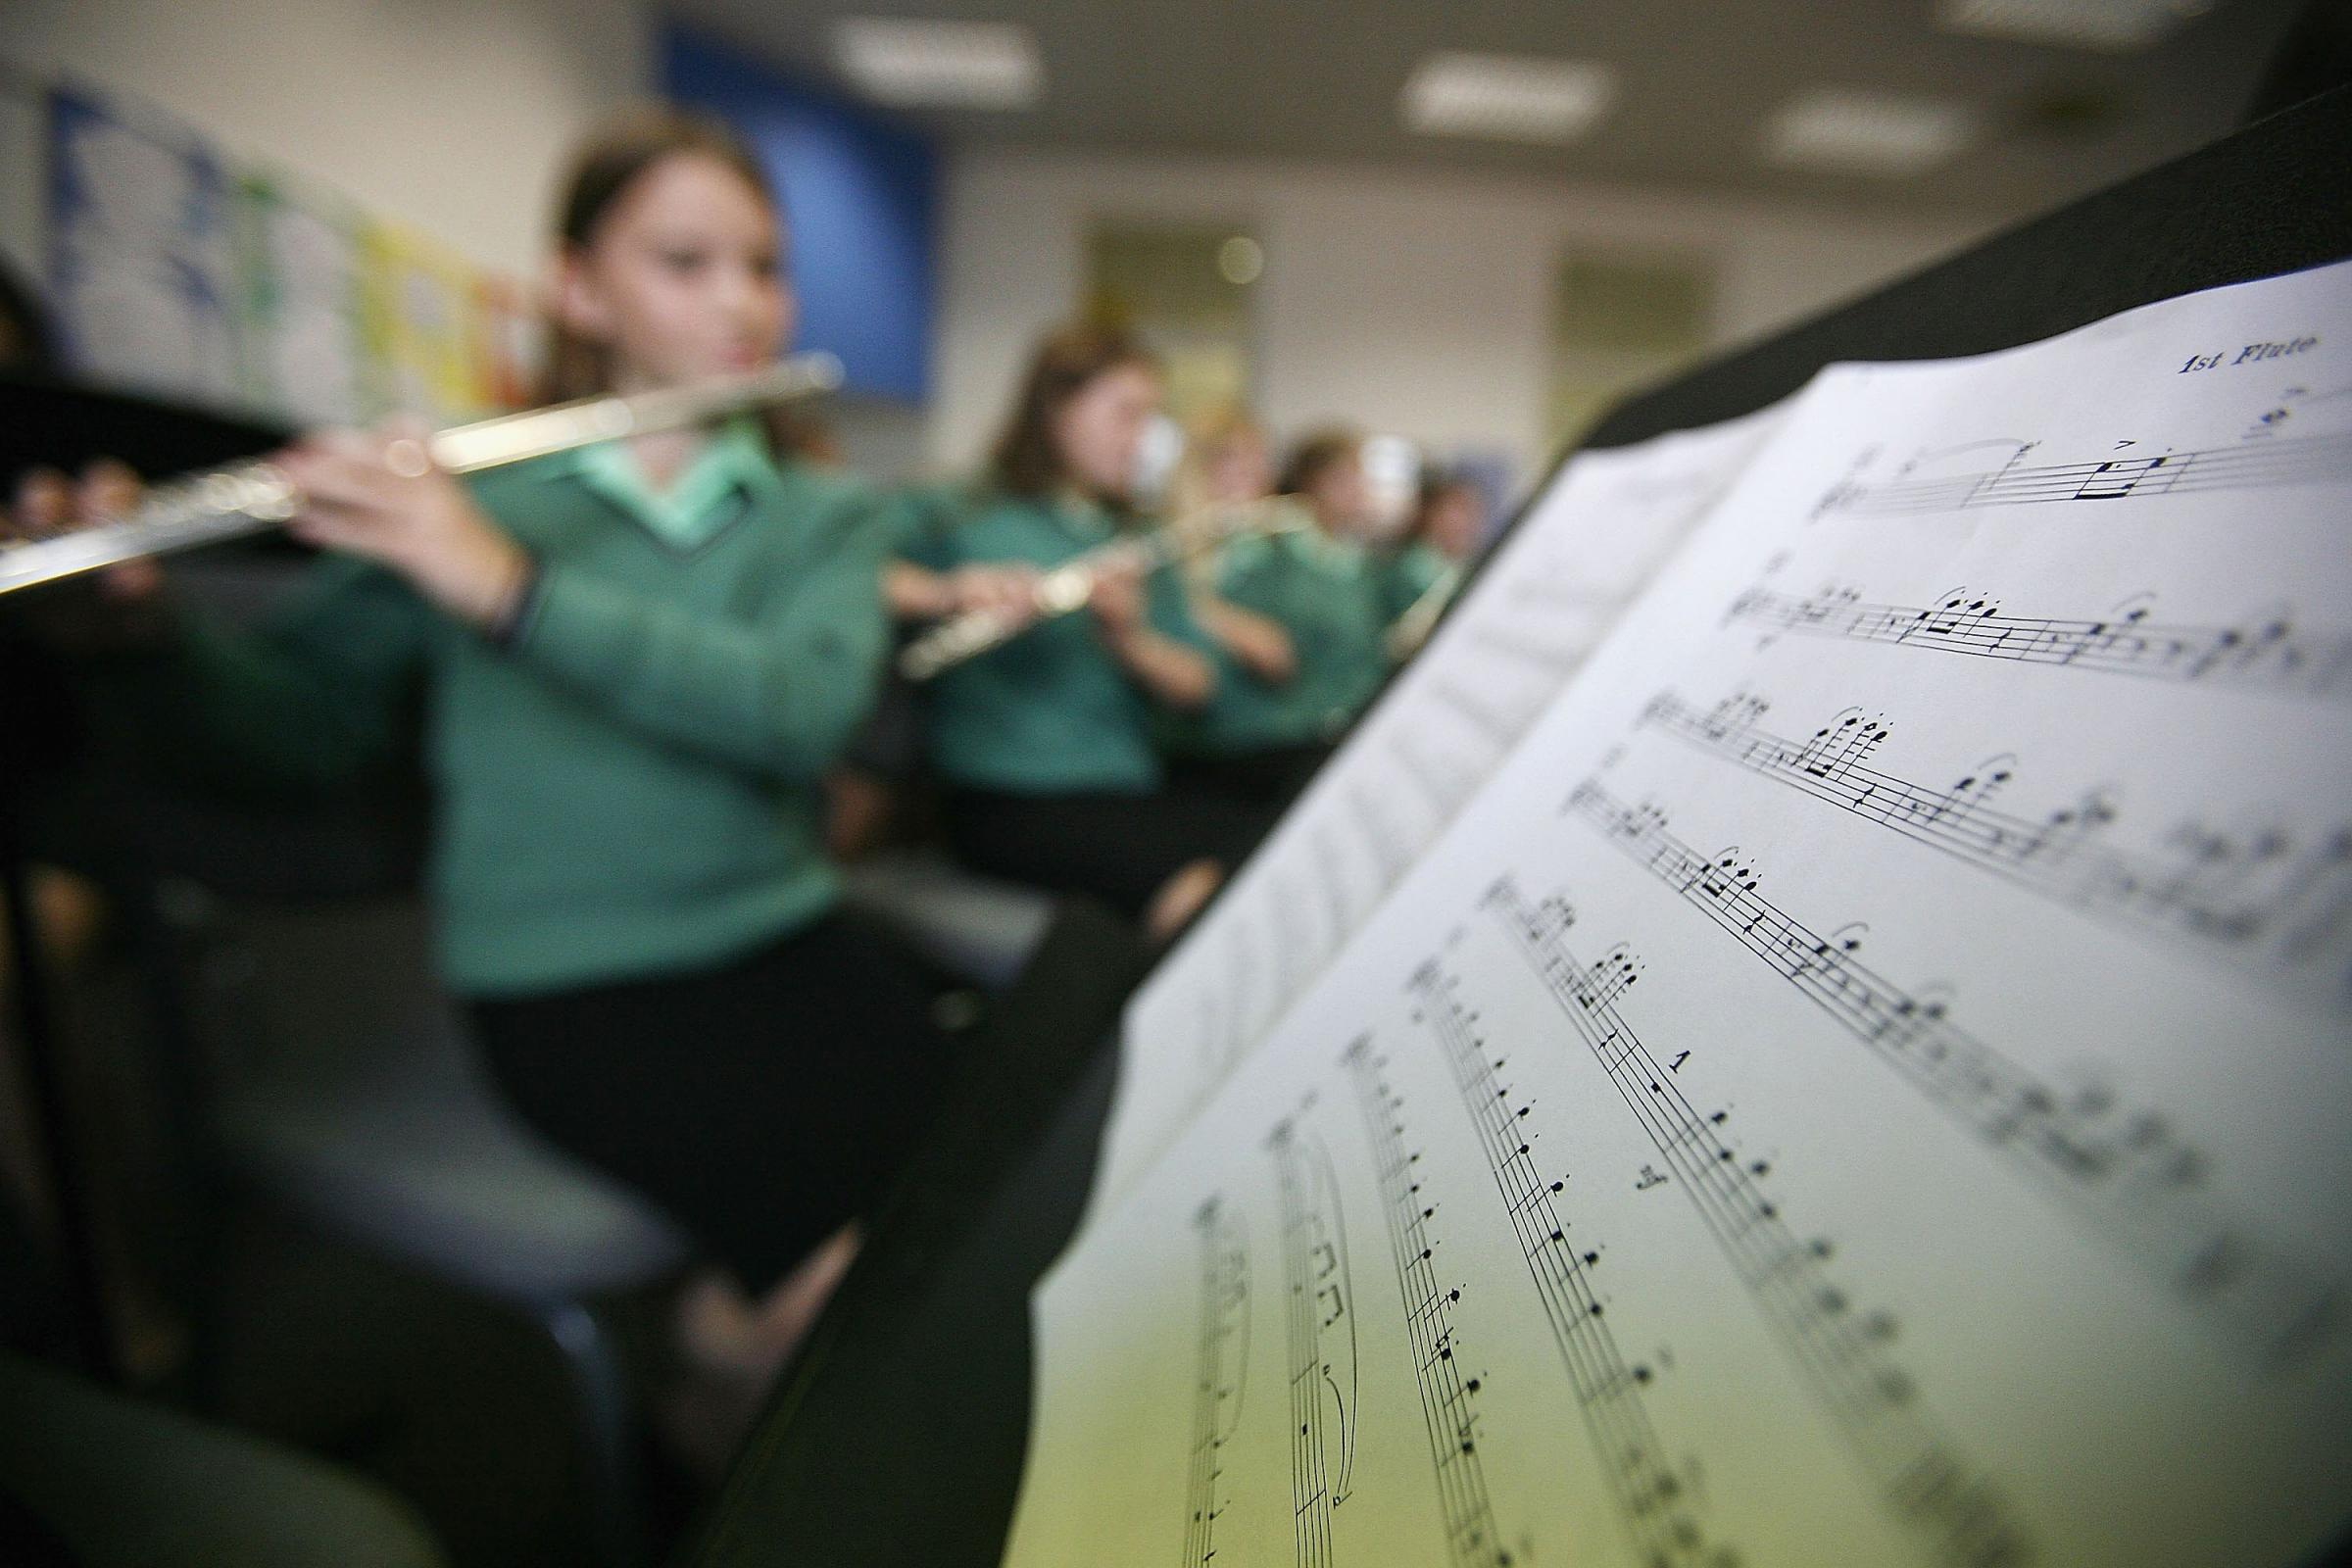 Extra cash to fund creative lessons at schools will be music to the ears